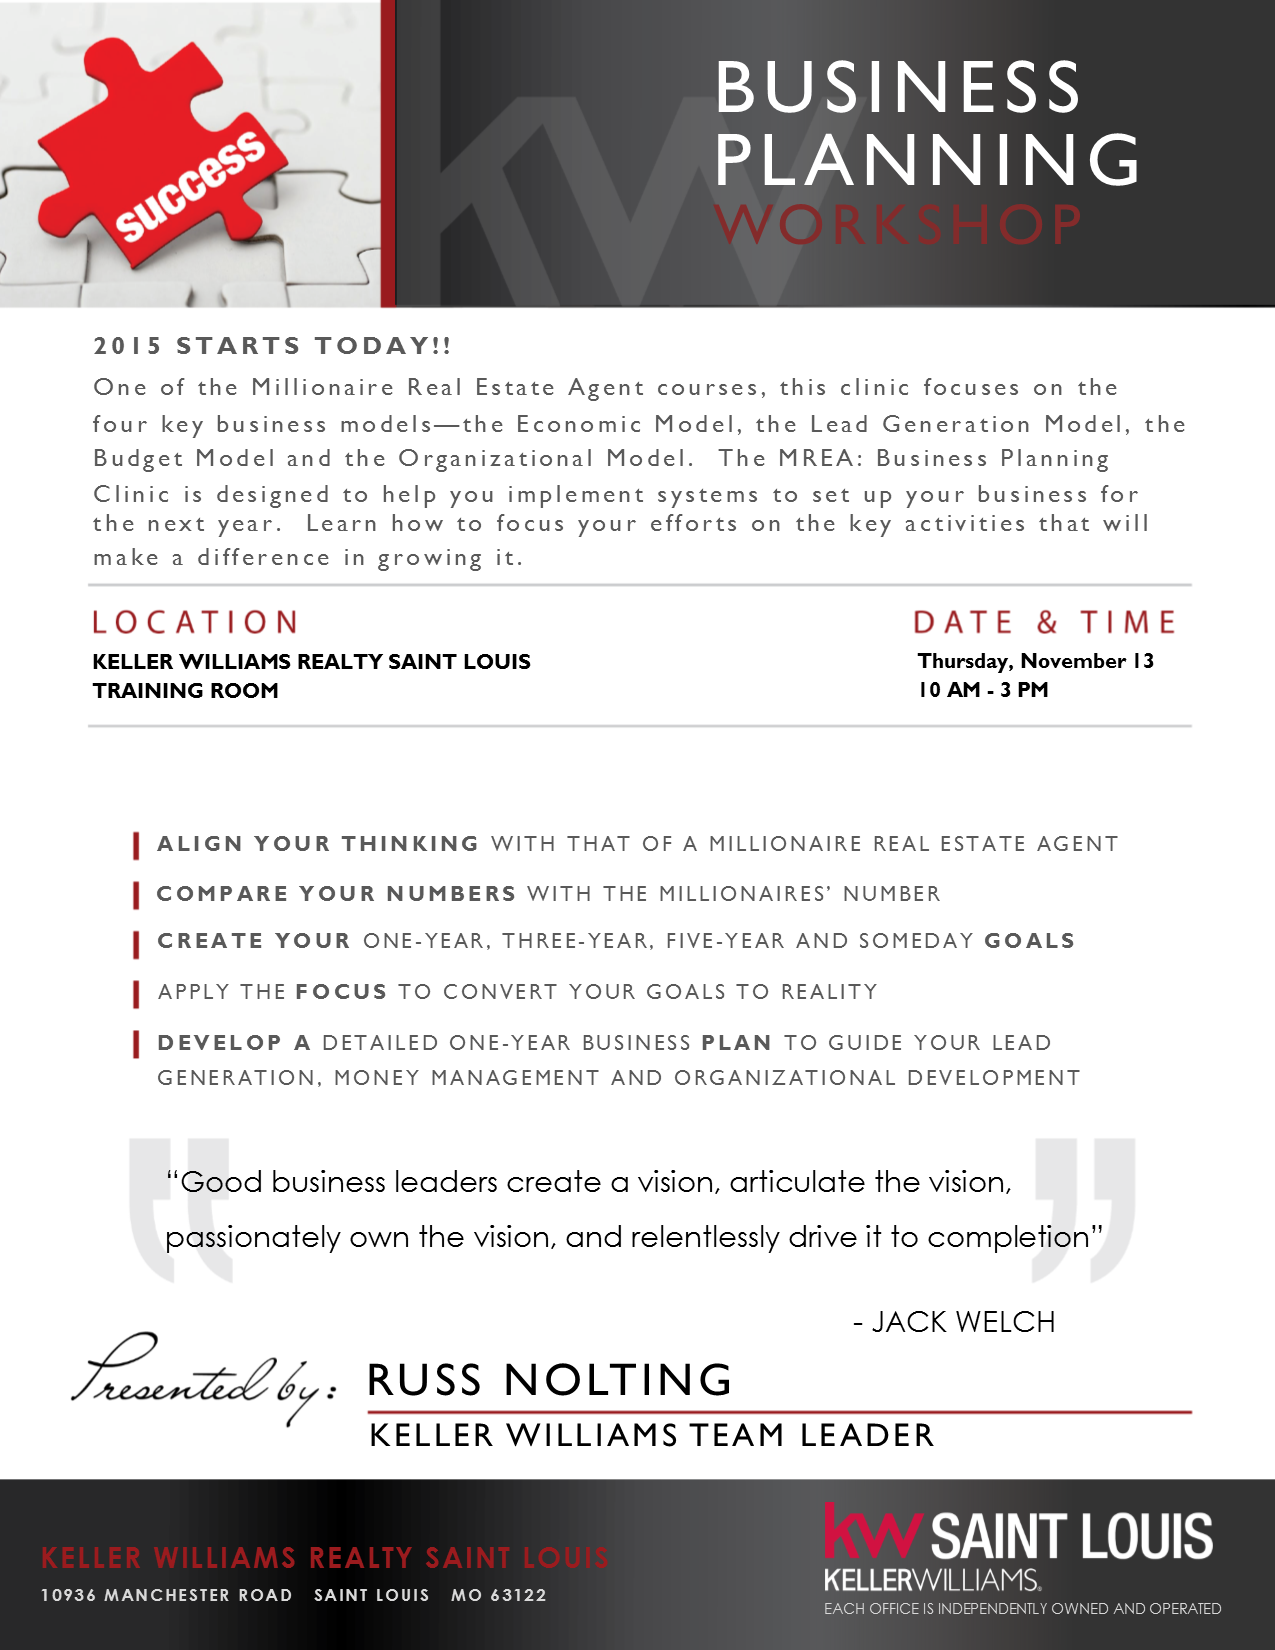 business planning clinic thursday november 13 from 10a to 3p keller williams realty saint louis. Black Bedroom Furniture Sets. Home Design Ideas